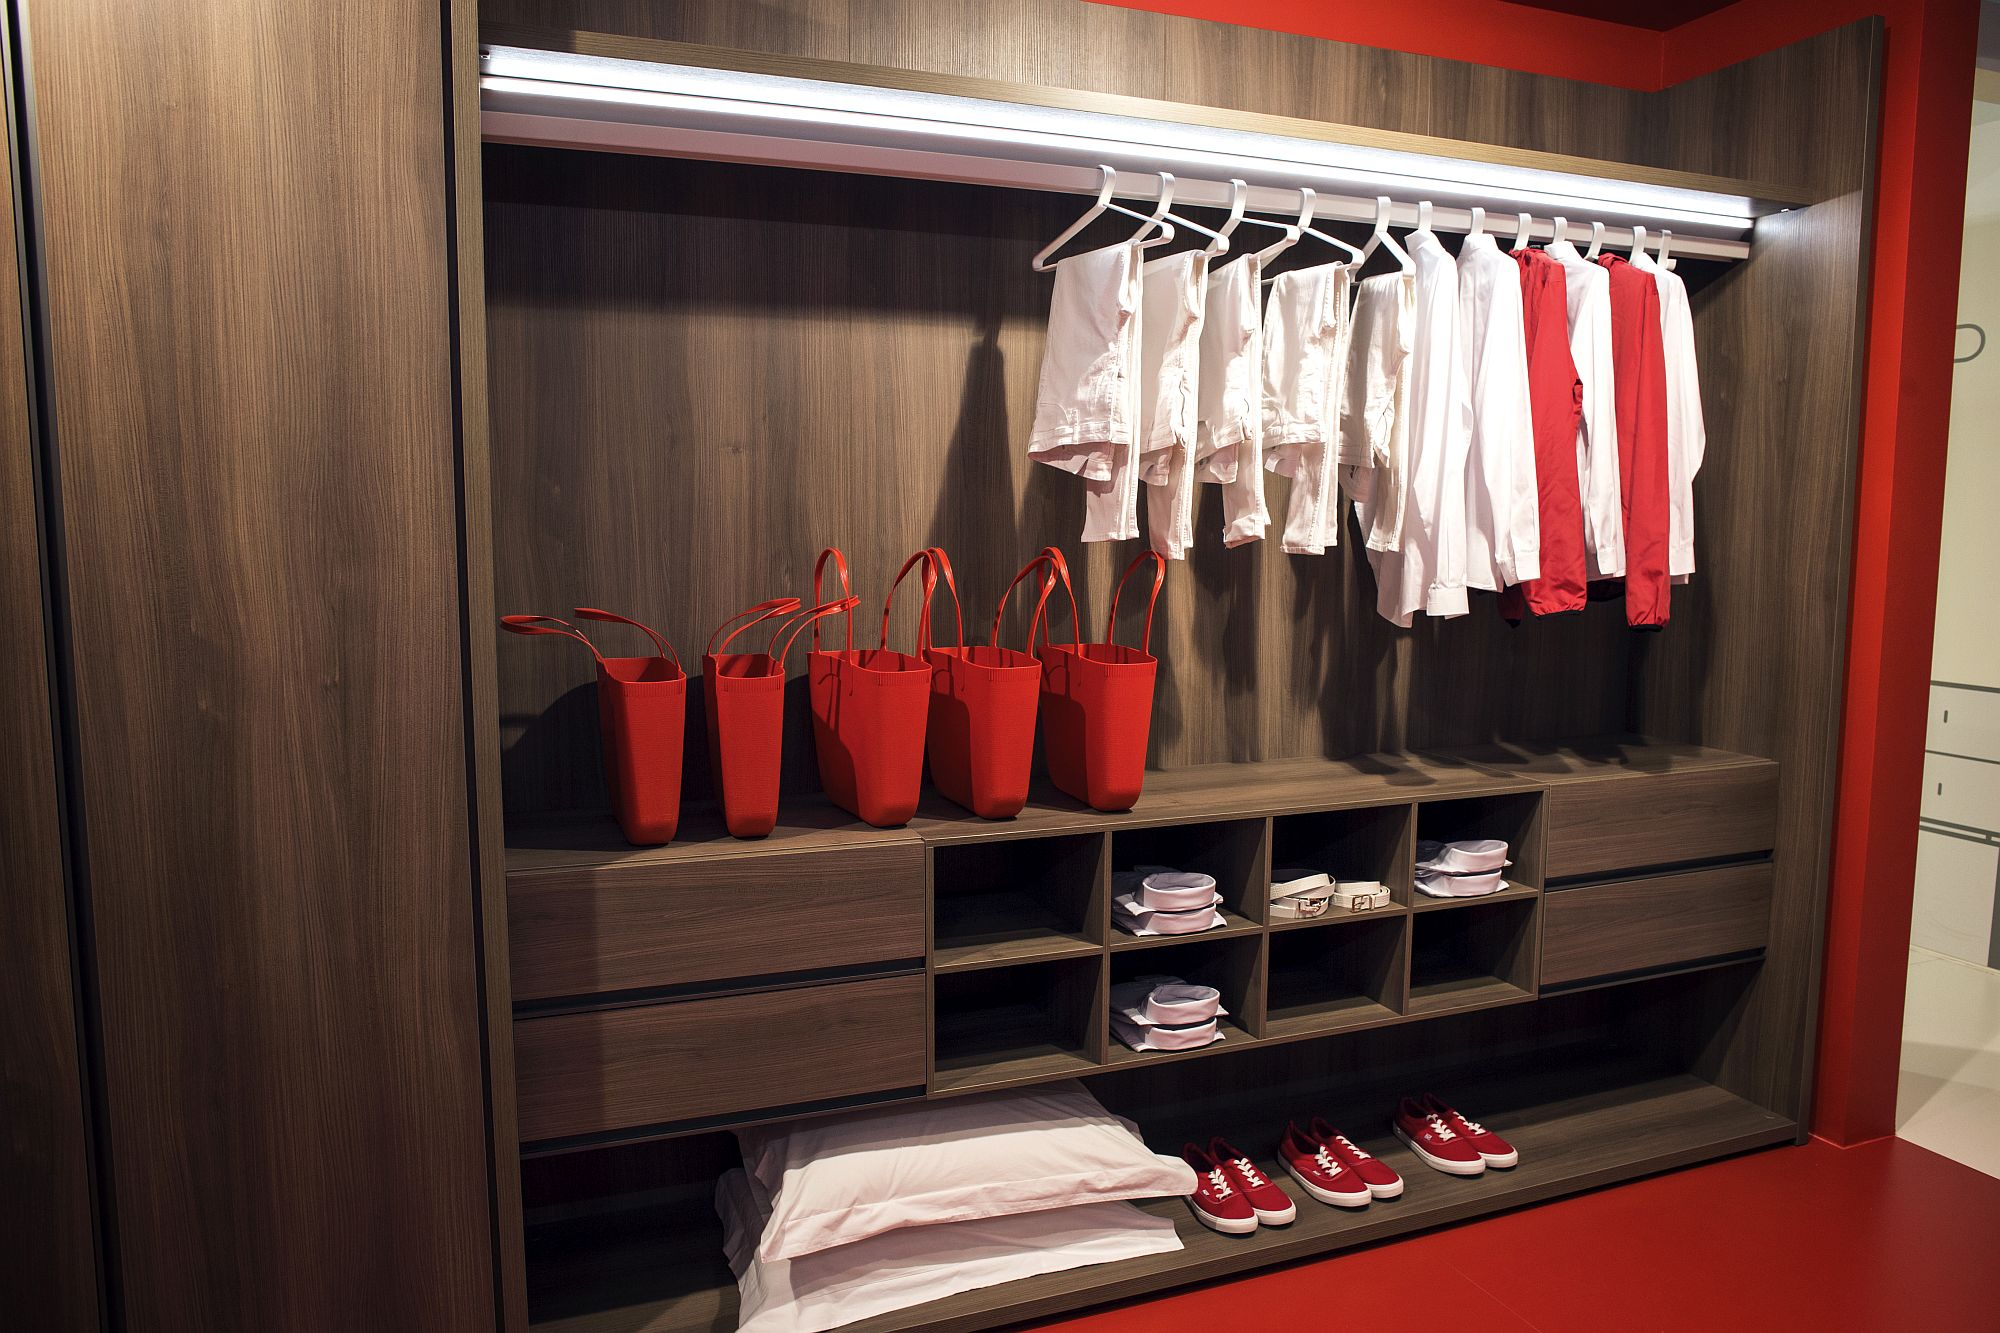 Wooden shelves and cabinets ample space for clothes and accessories